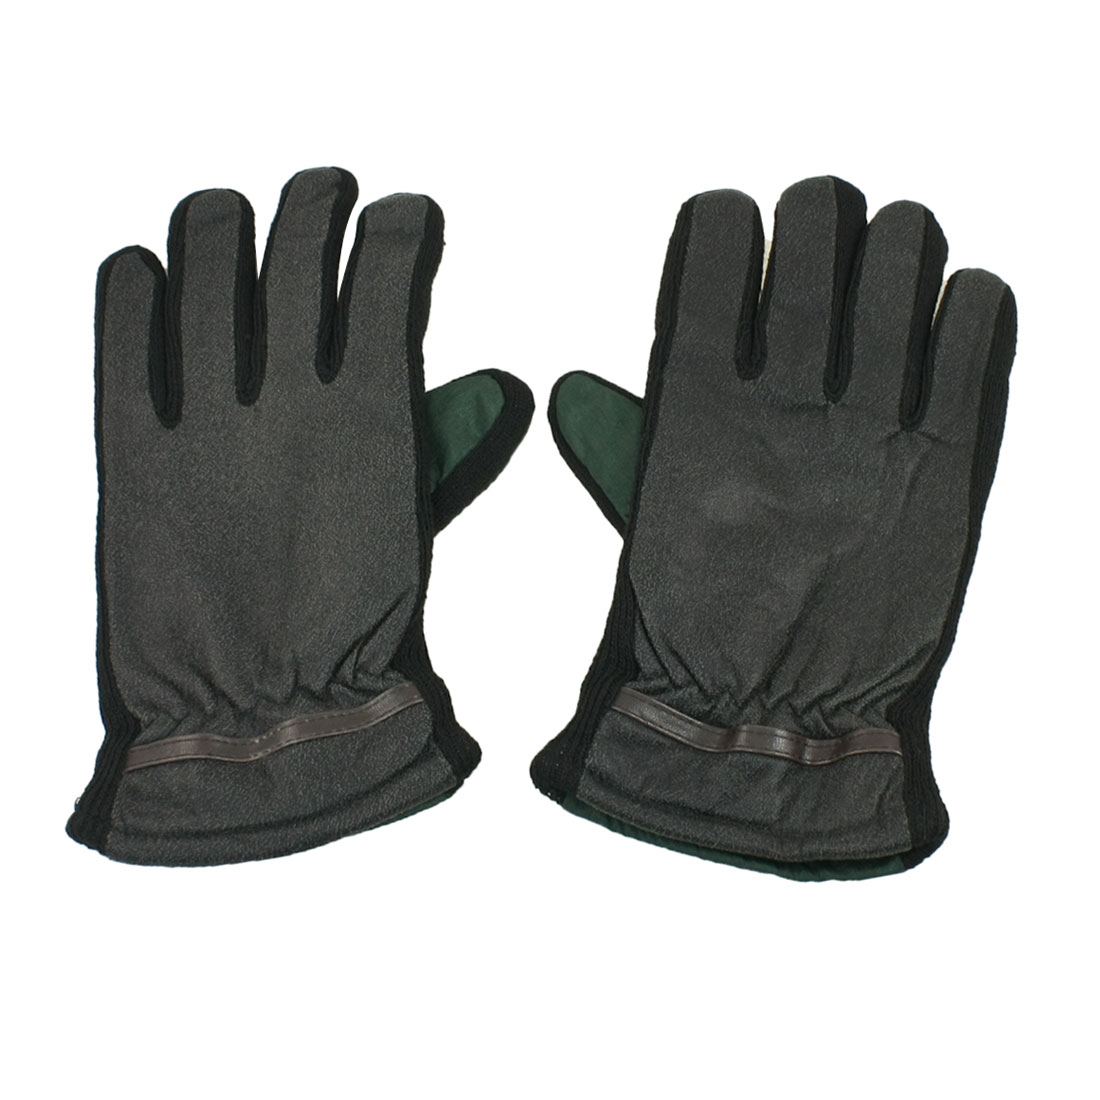 Unisex Pair Dark Gray Green Winter Warm Full Finger Thick Gloves M